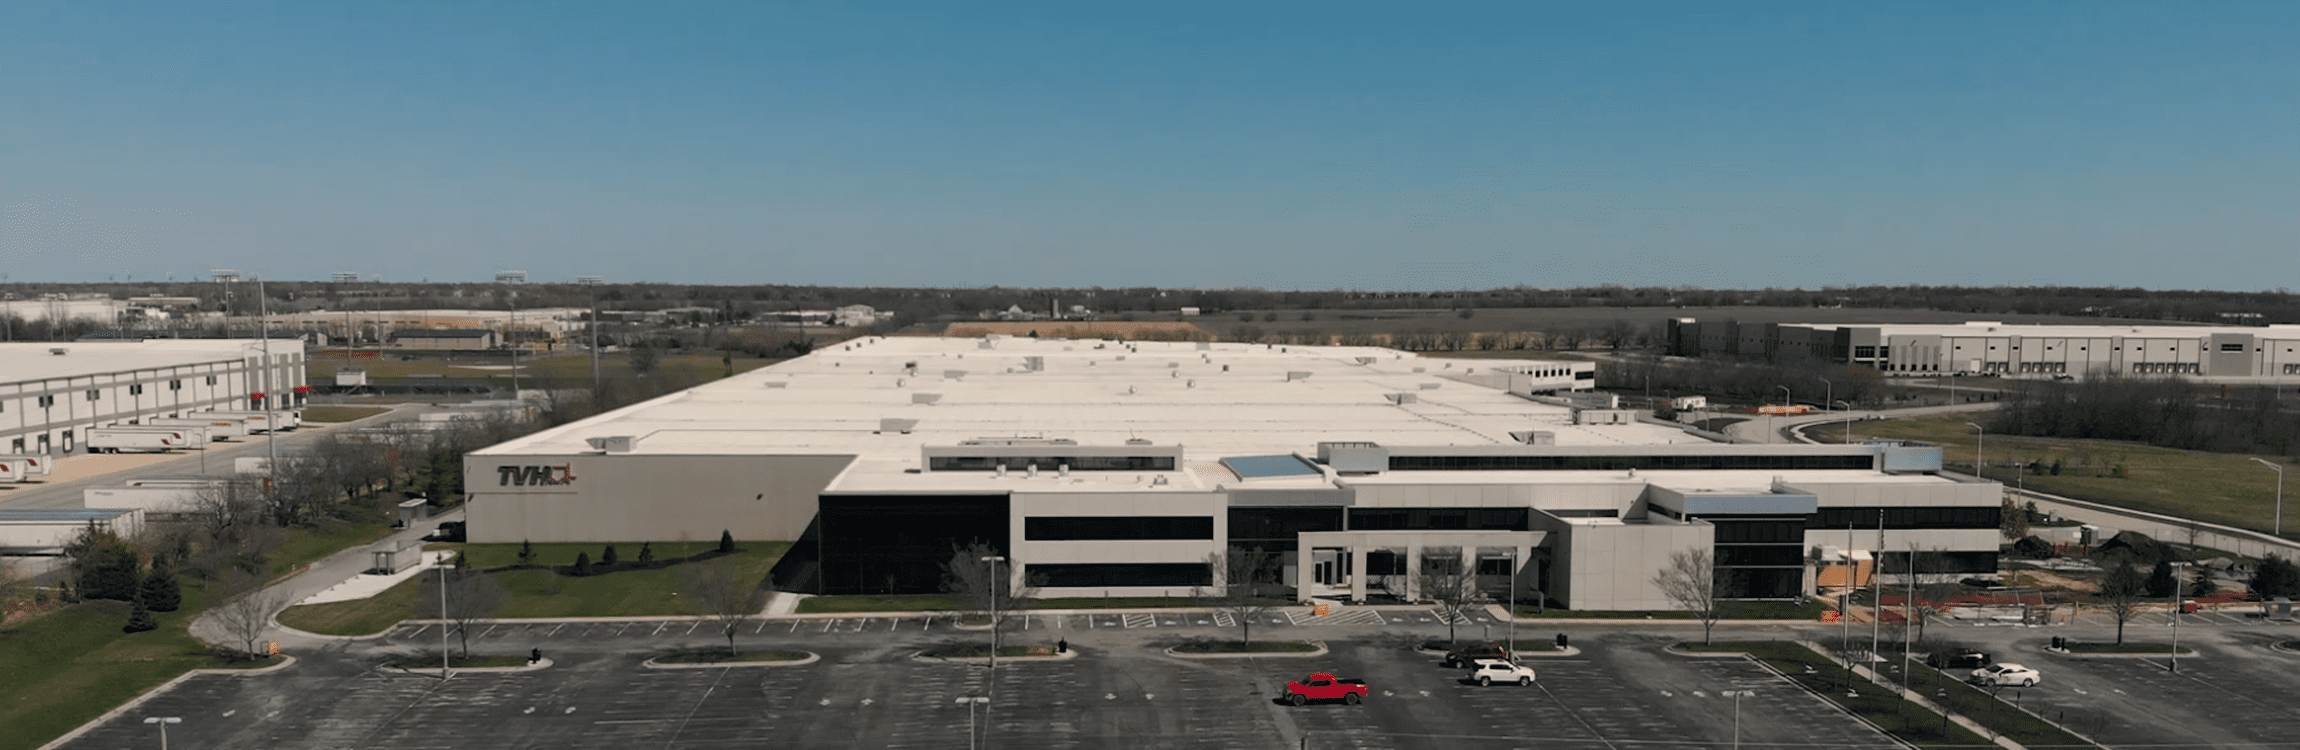 The new distribution center for TVH.